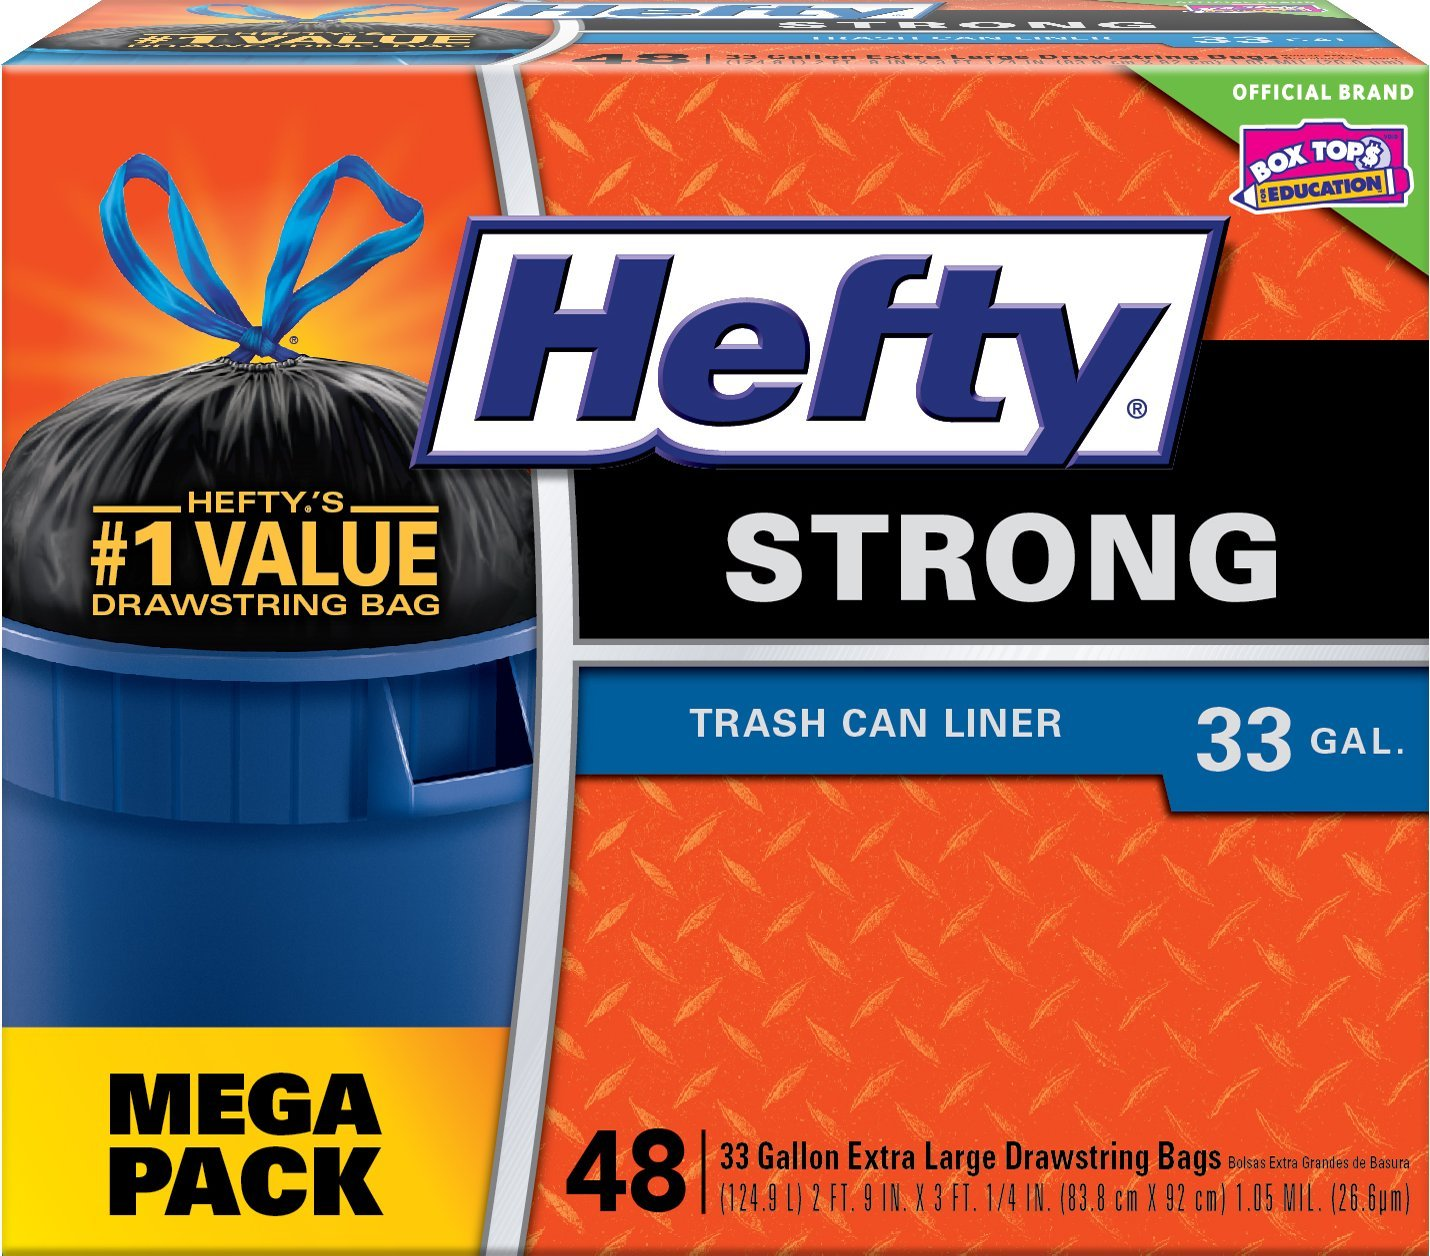 Hefty Strong Large Trash Bags 33 Gallon - Can Liner - 48 Count